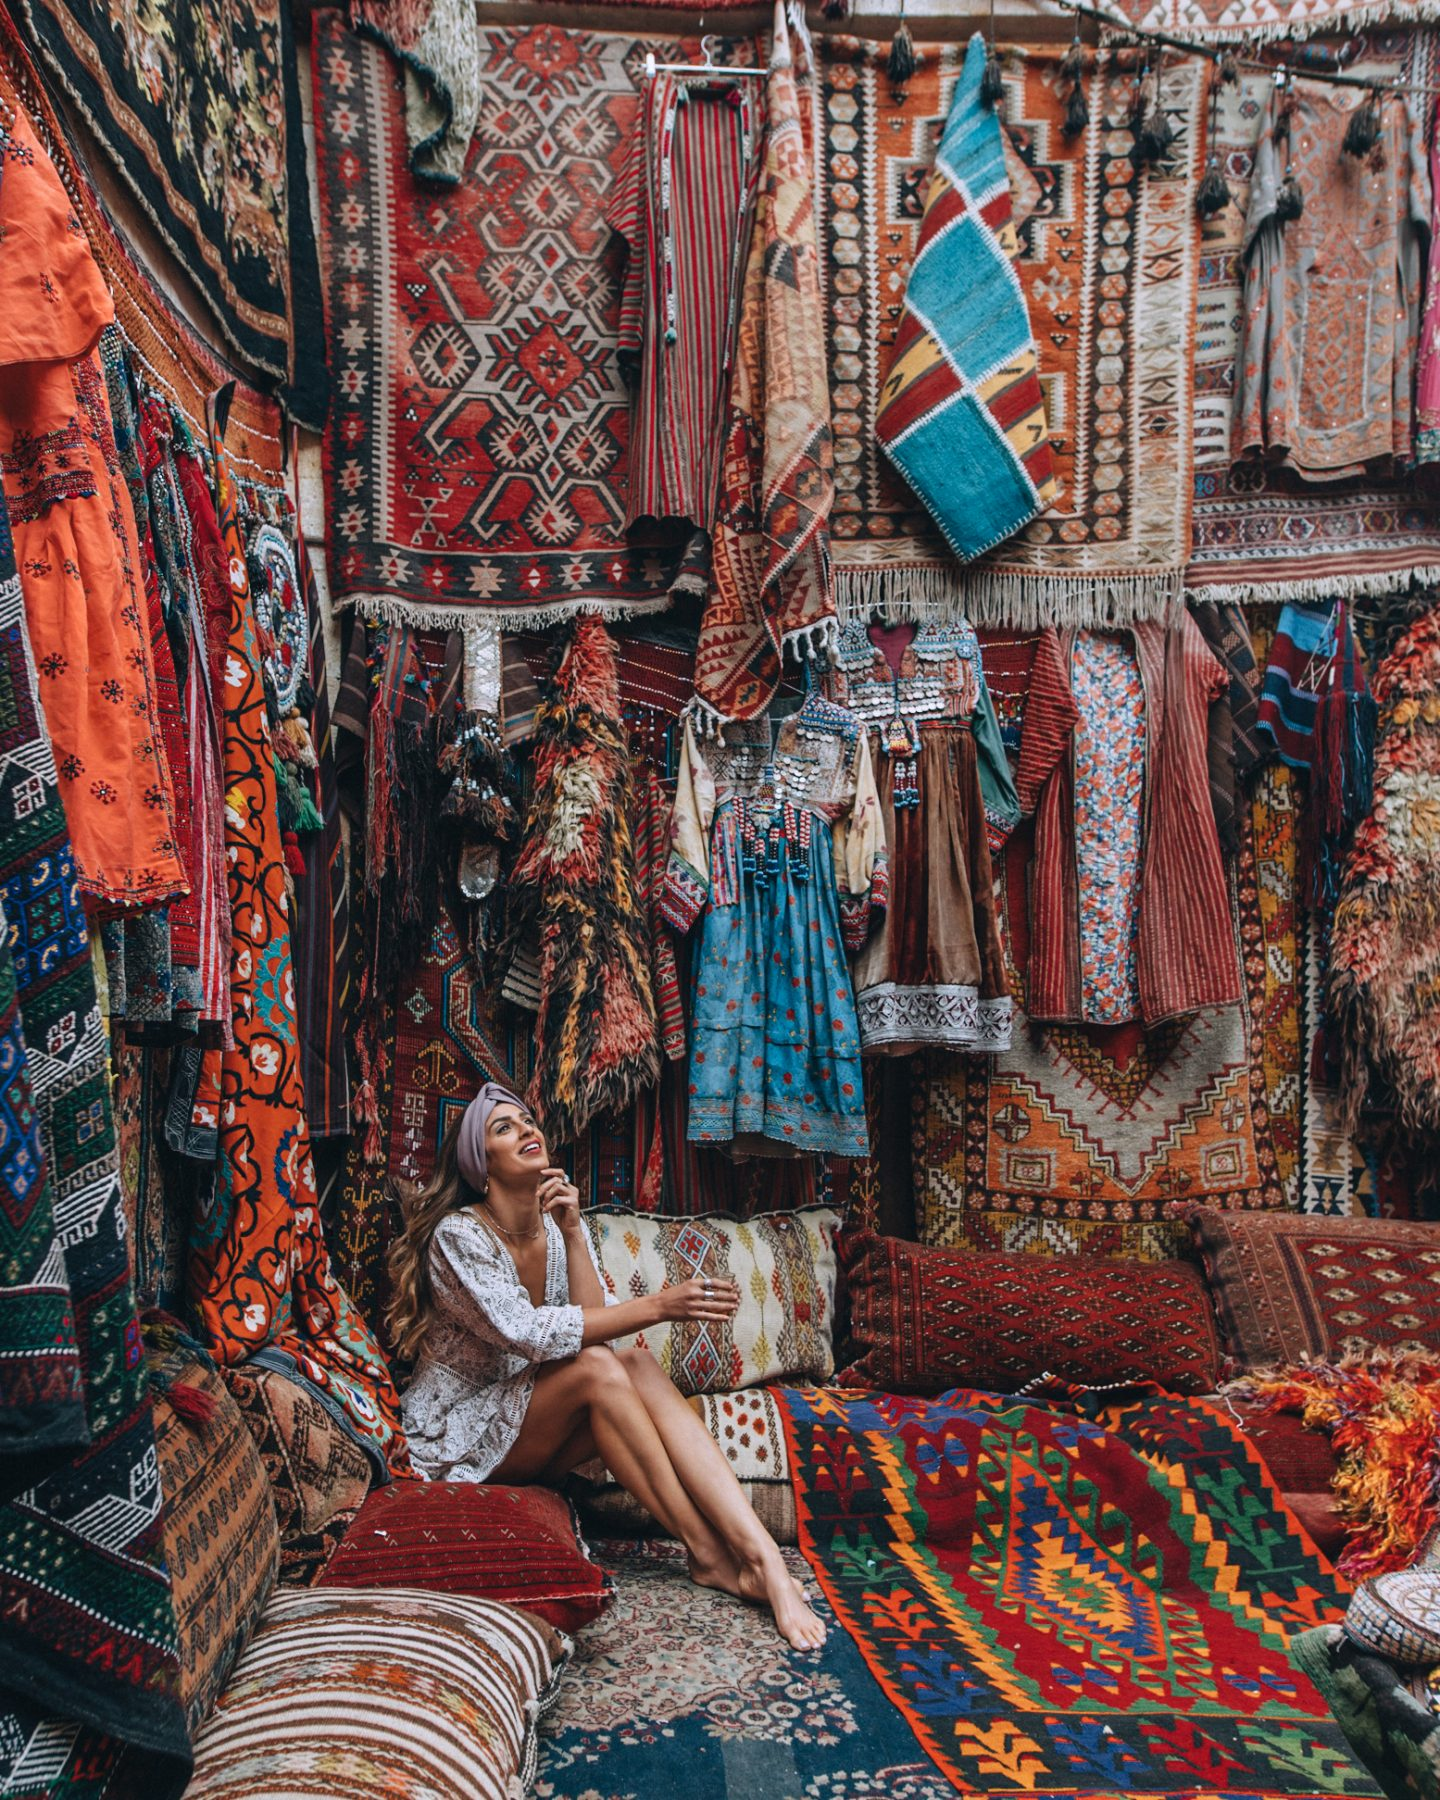 Visiting a Turkish rug shop in Cappadocia